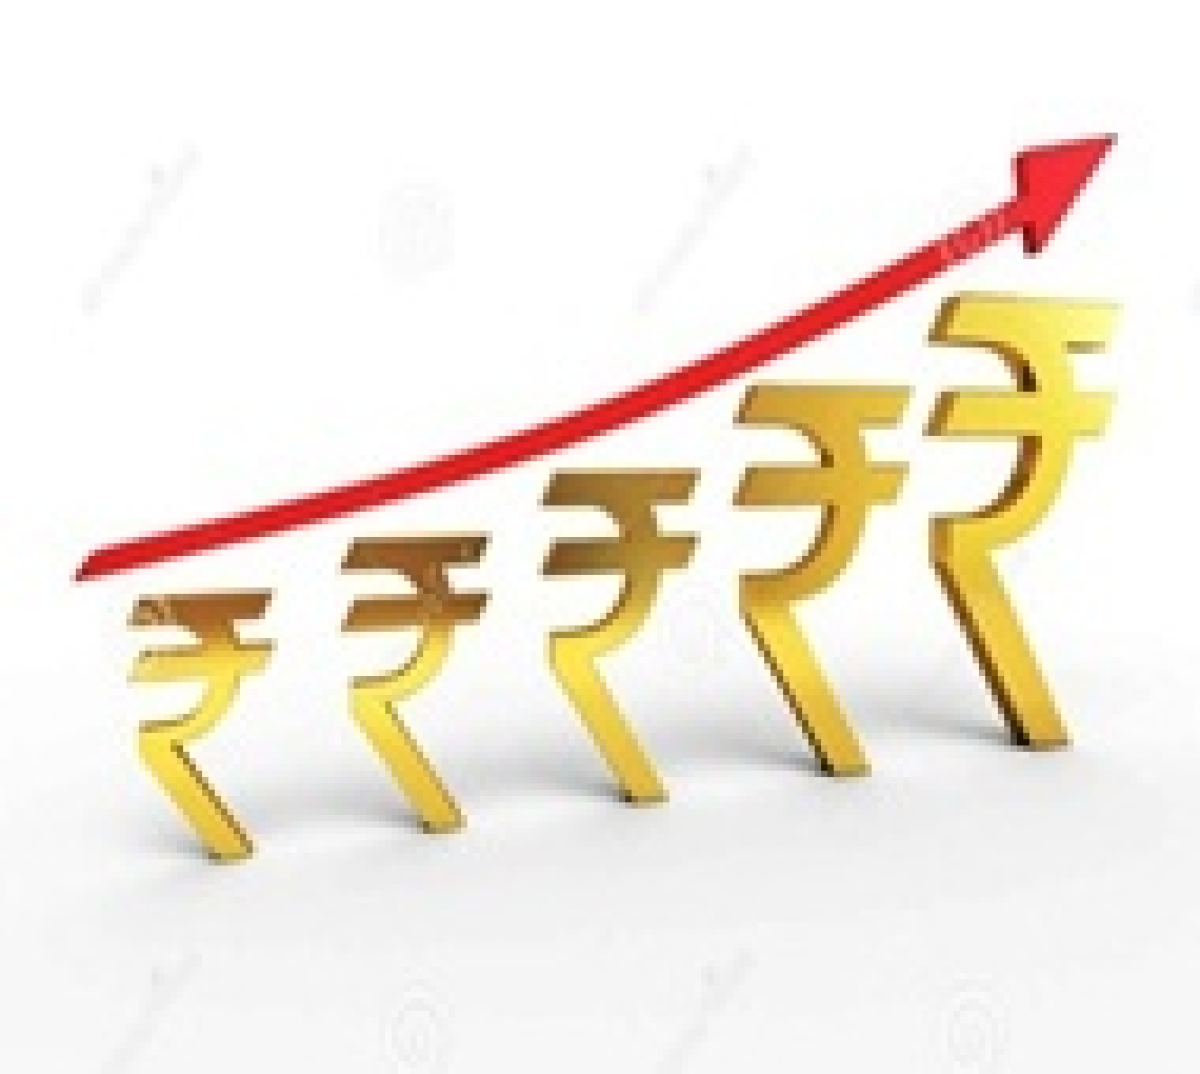 Rupee surges 81 paise to 74.35 against USD